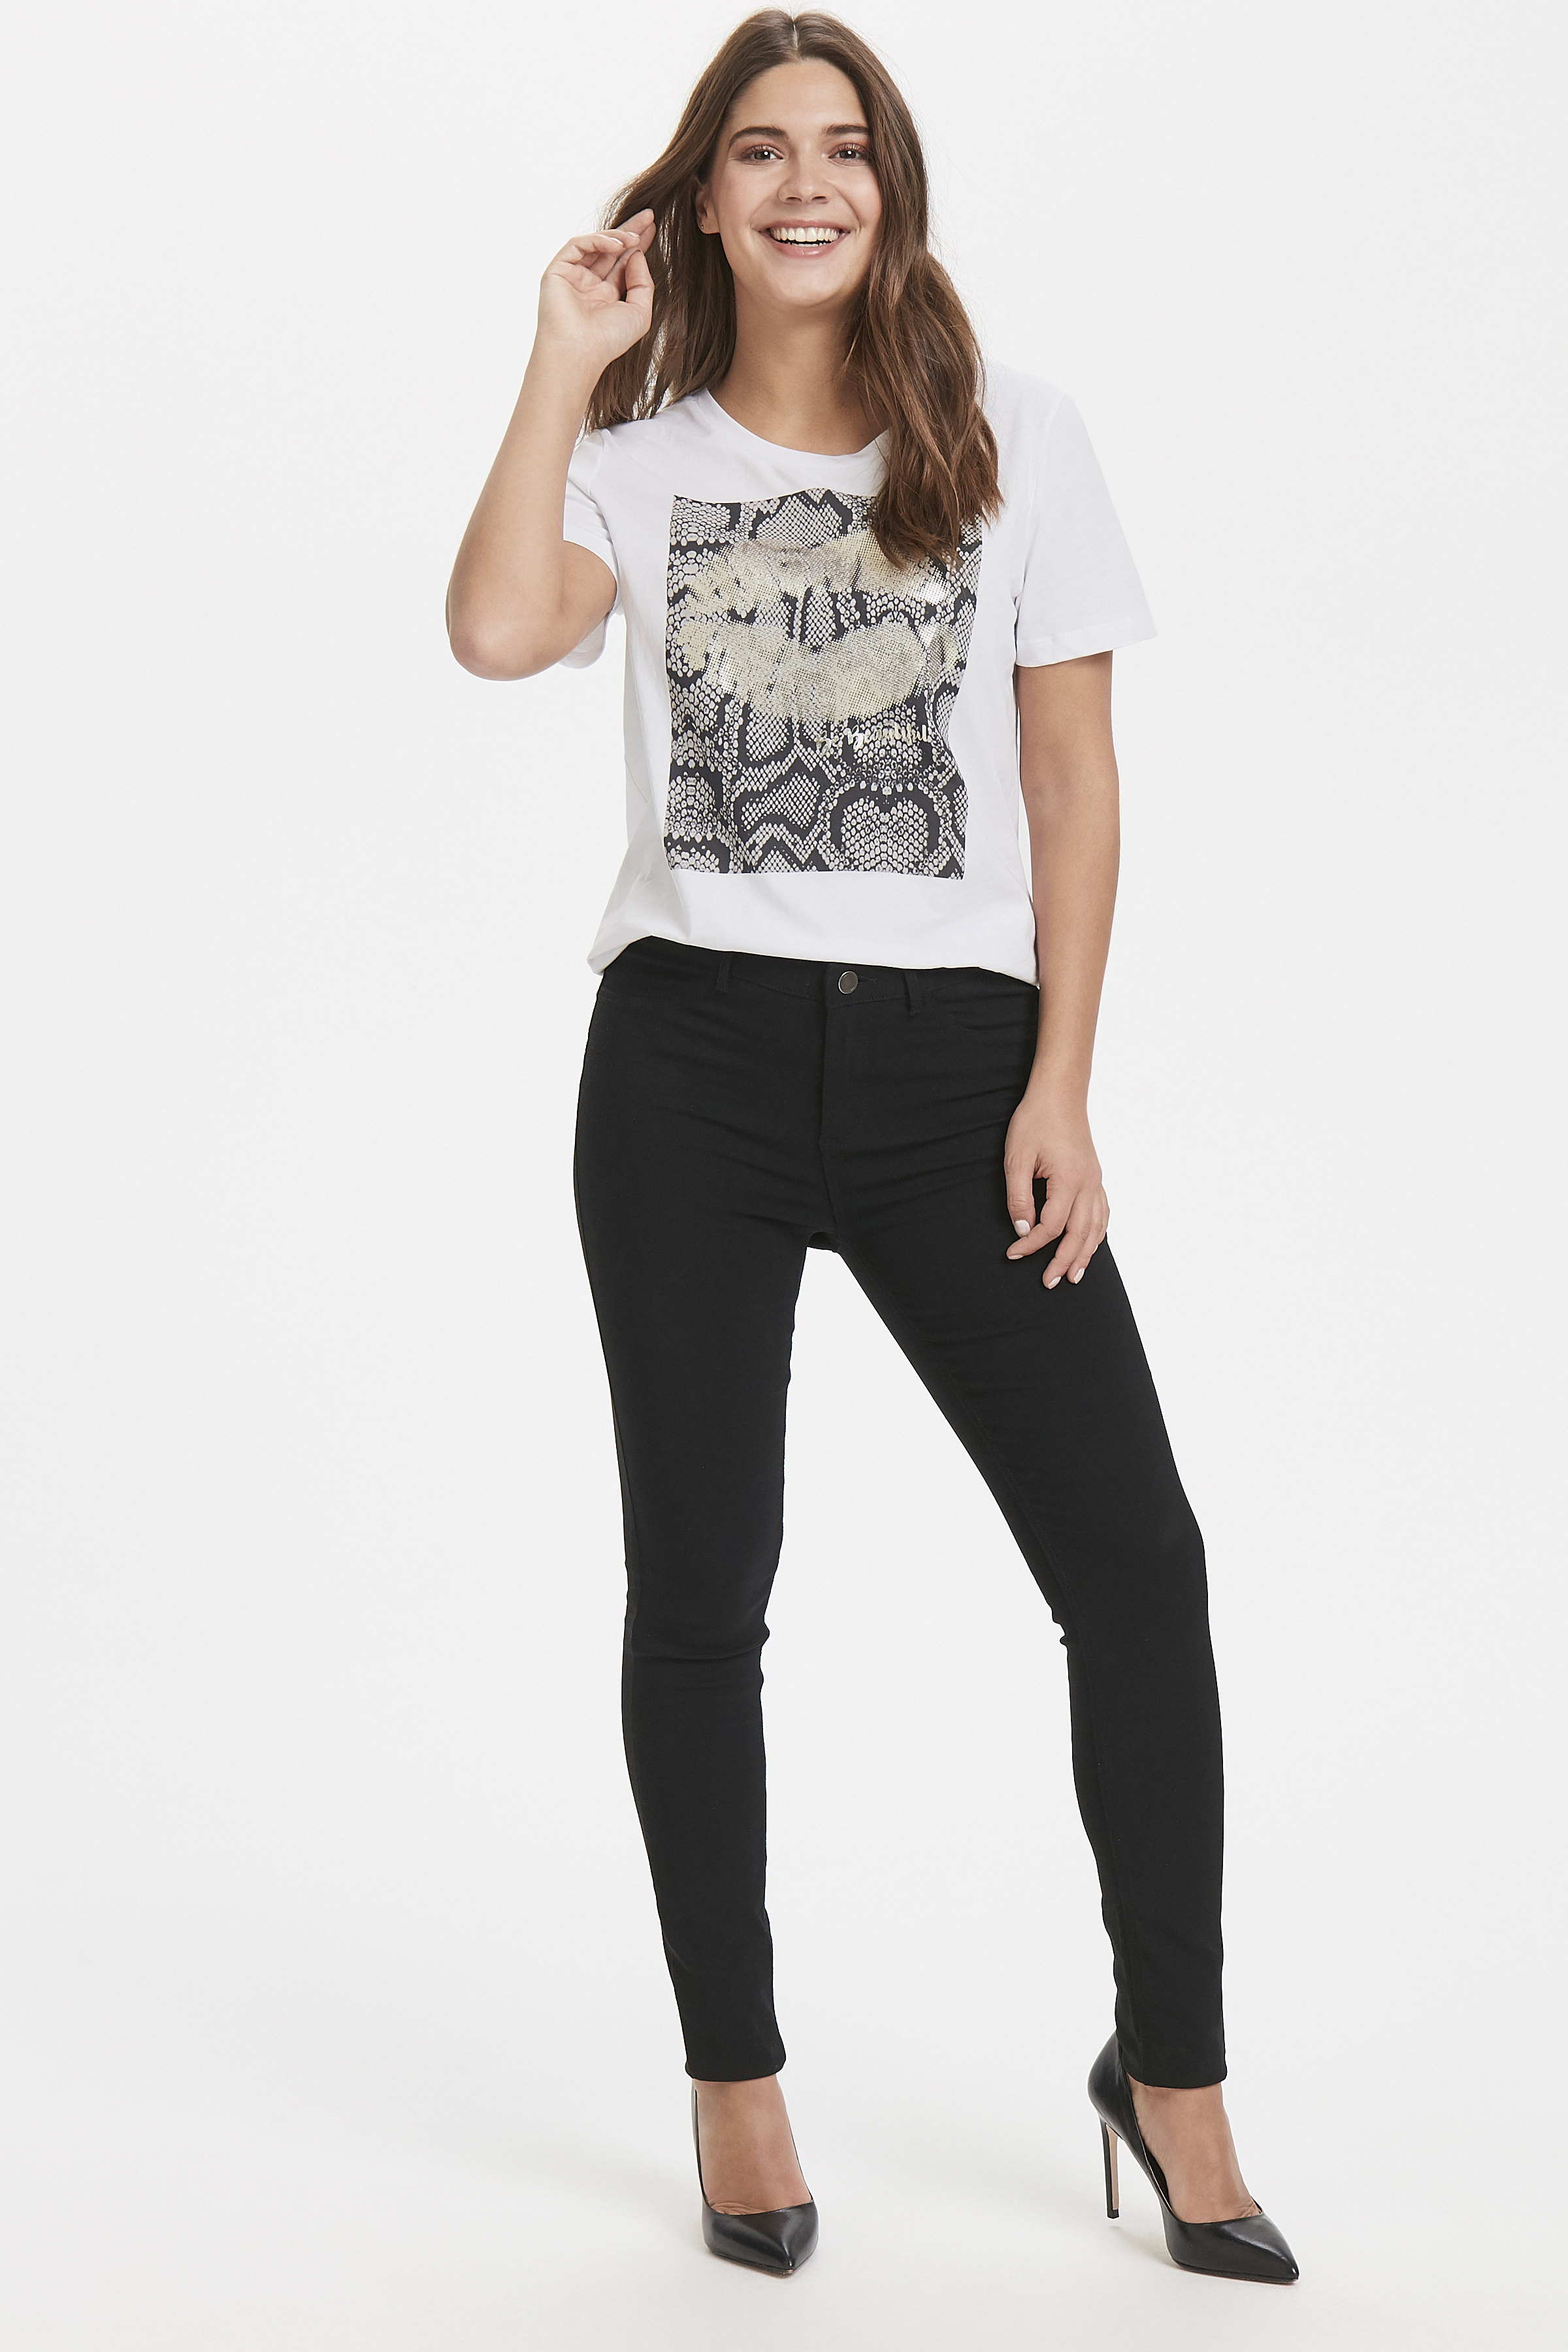 Optical White T-shirt from b.young – Buy Optical White T-shirt from size XS-XL here